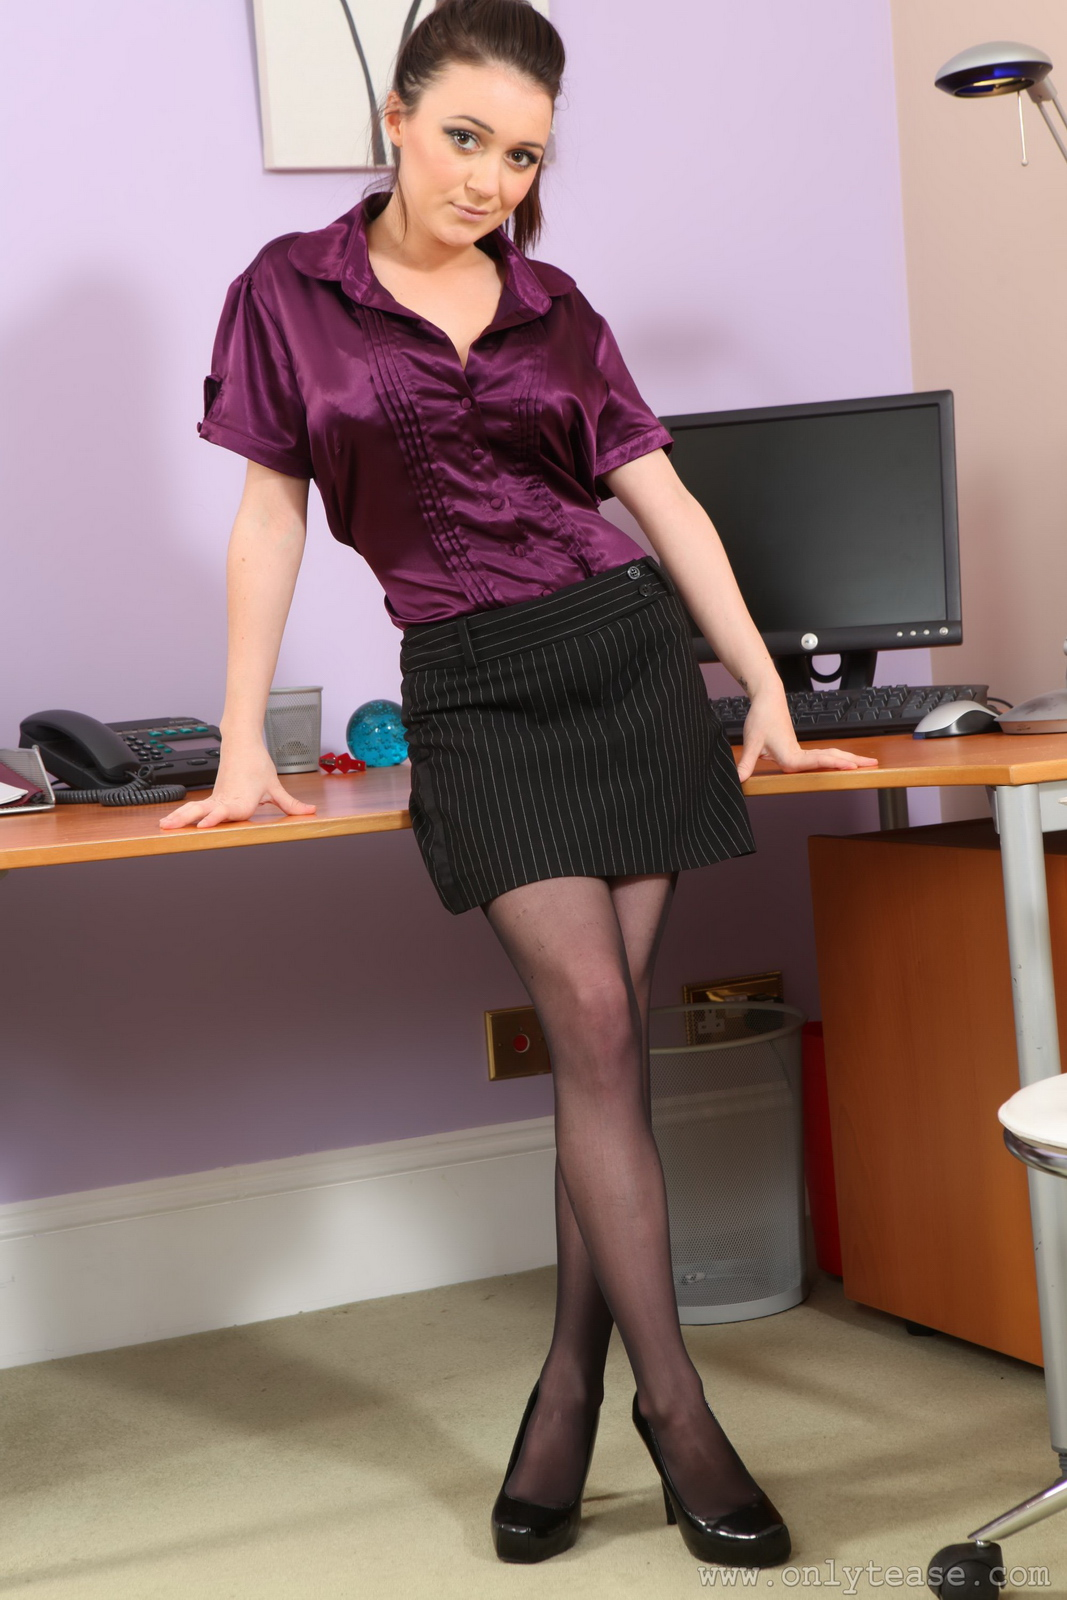 clair-meek-stockings-office-tits-naked-onlytease-01